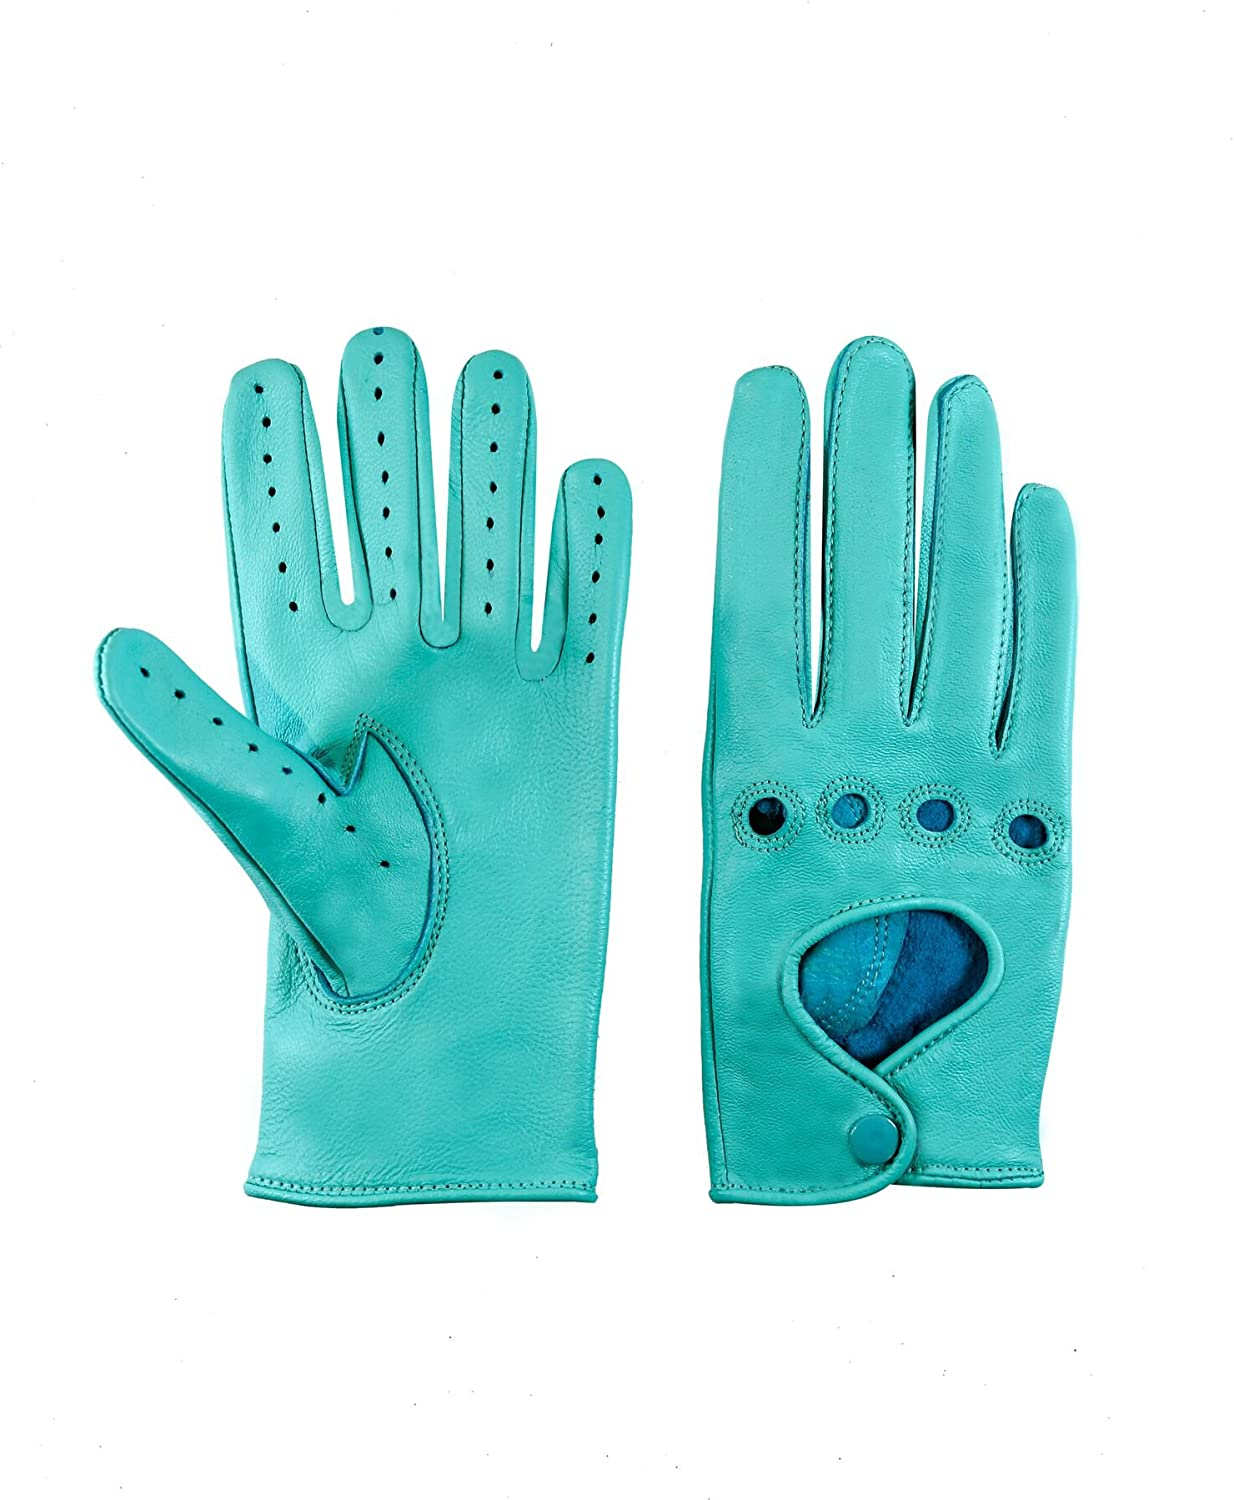 Sportsimpex Women Unlined Leather Driving Gloves (LARGE, TURQUOISE)